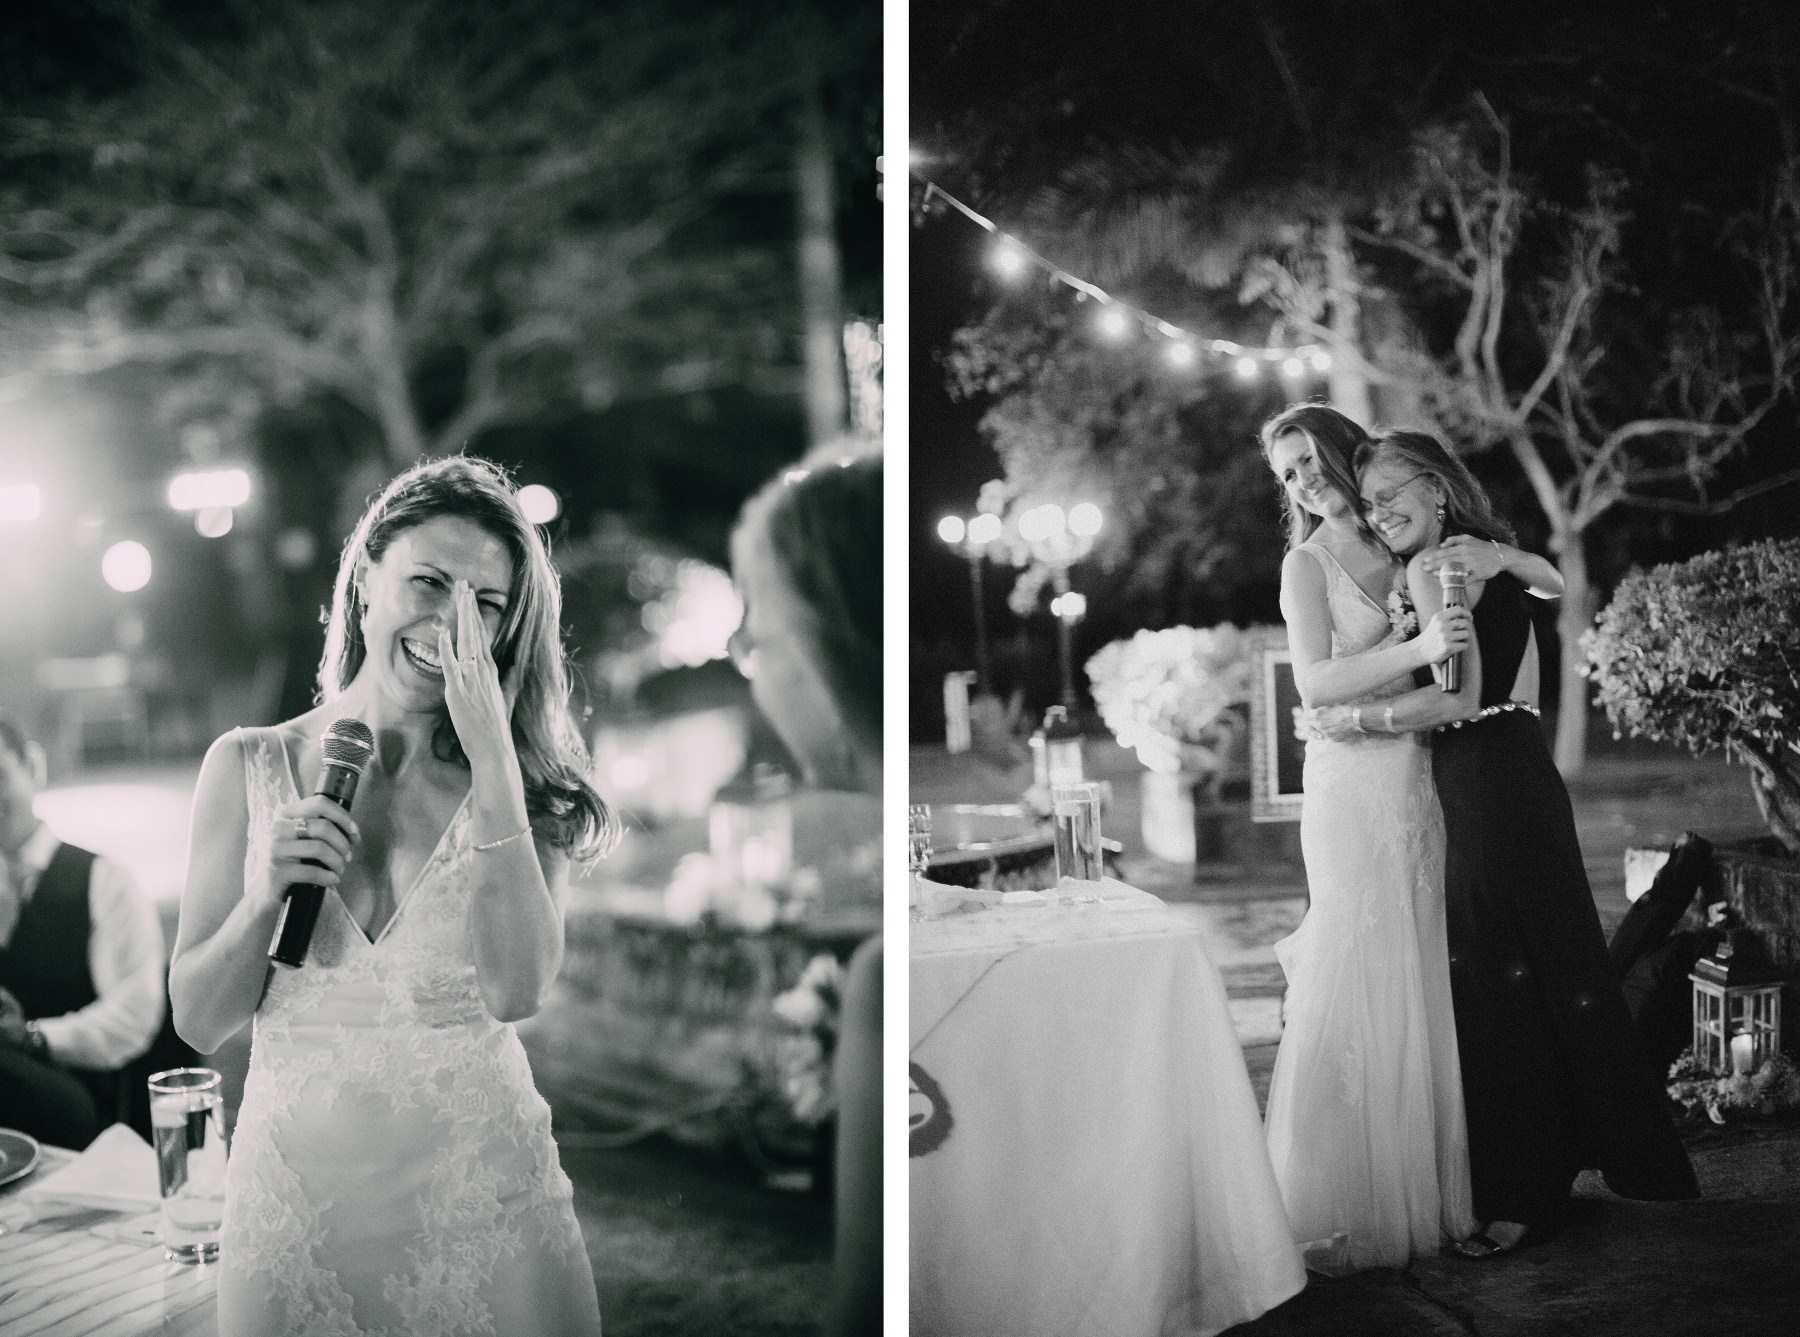 Colonial style destination wedding - Mexico, Nicaragua